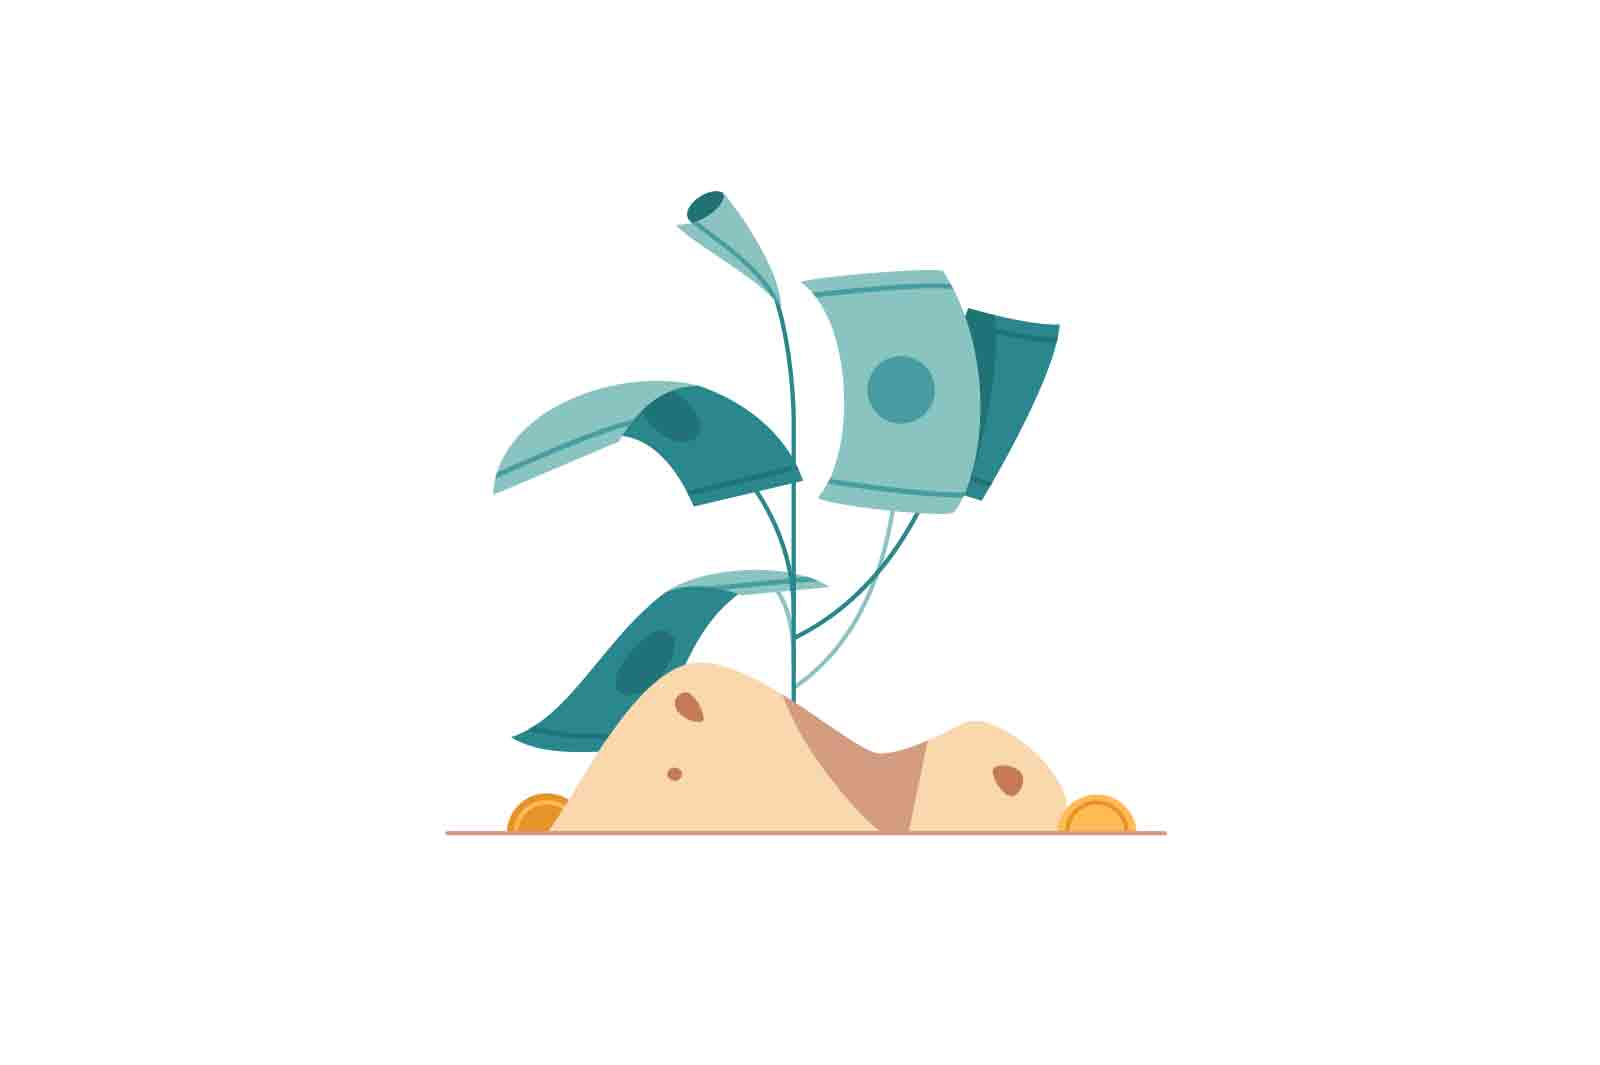 Money tree Animation. Small tree with money banknotes waving from left to right. Lottie, After Effects source files.